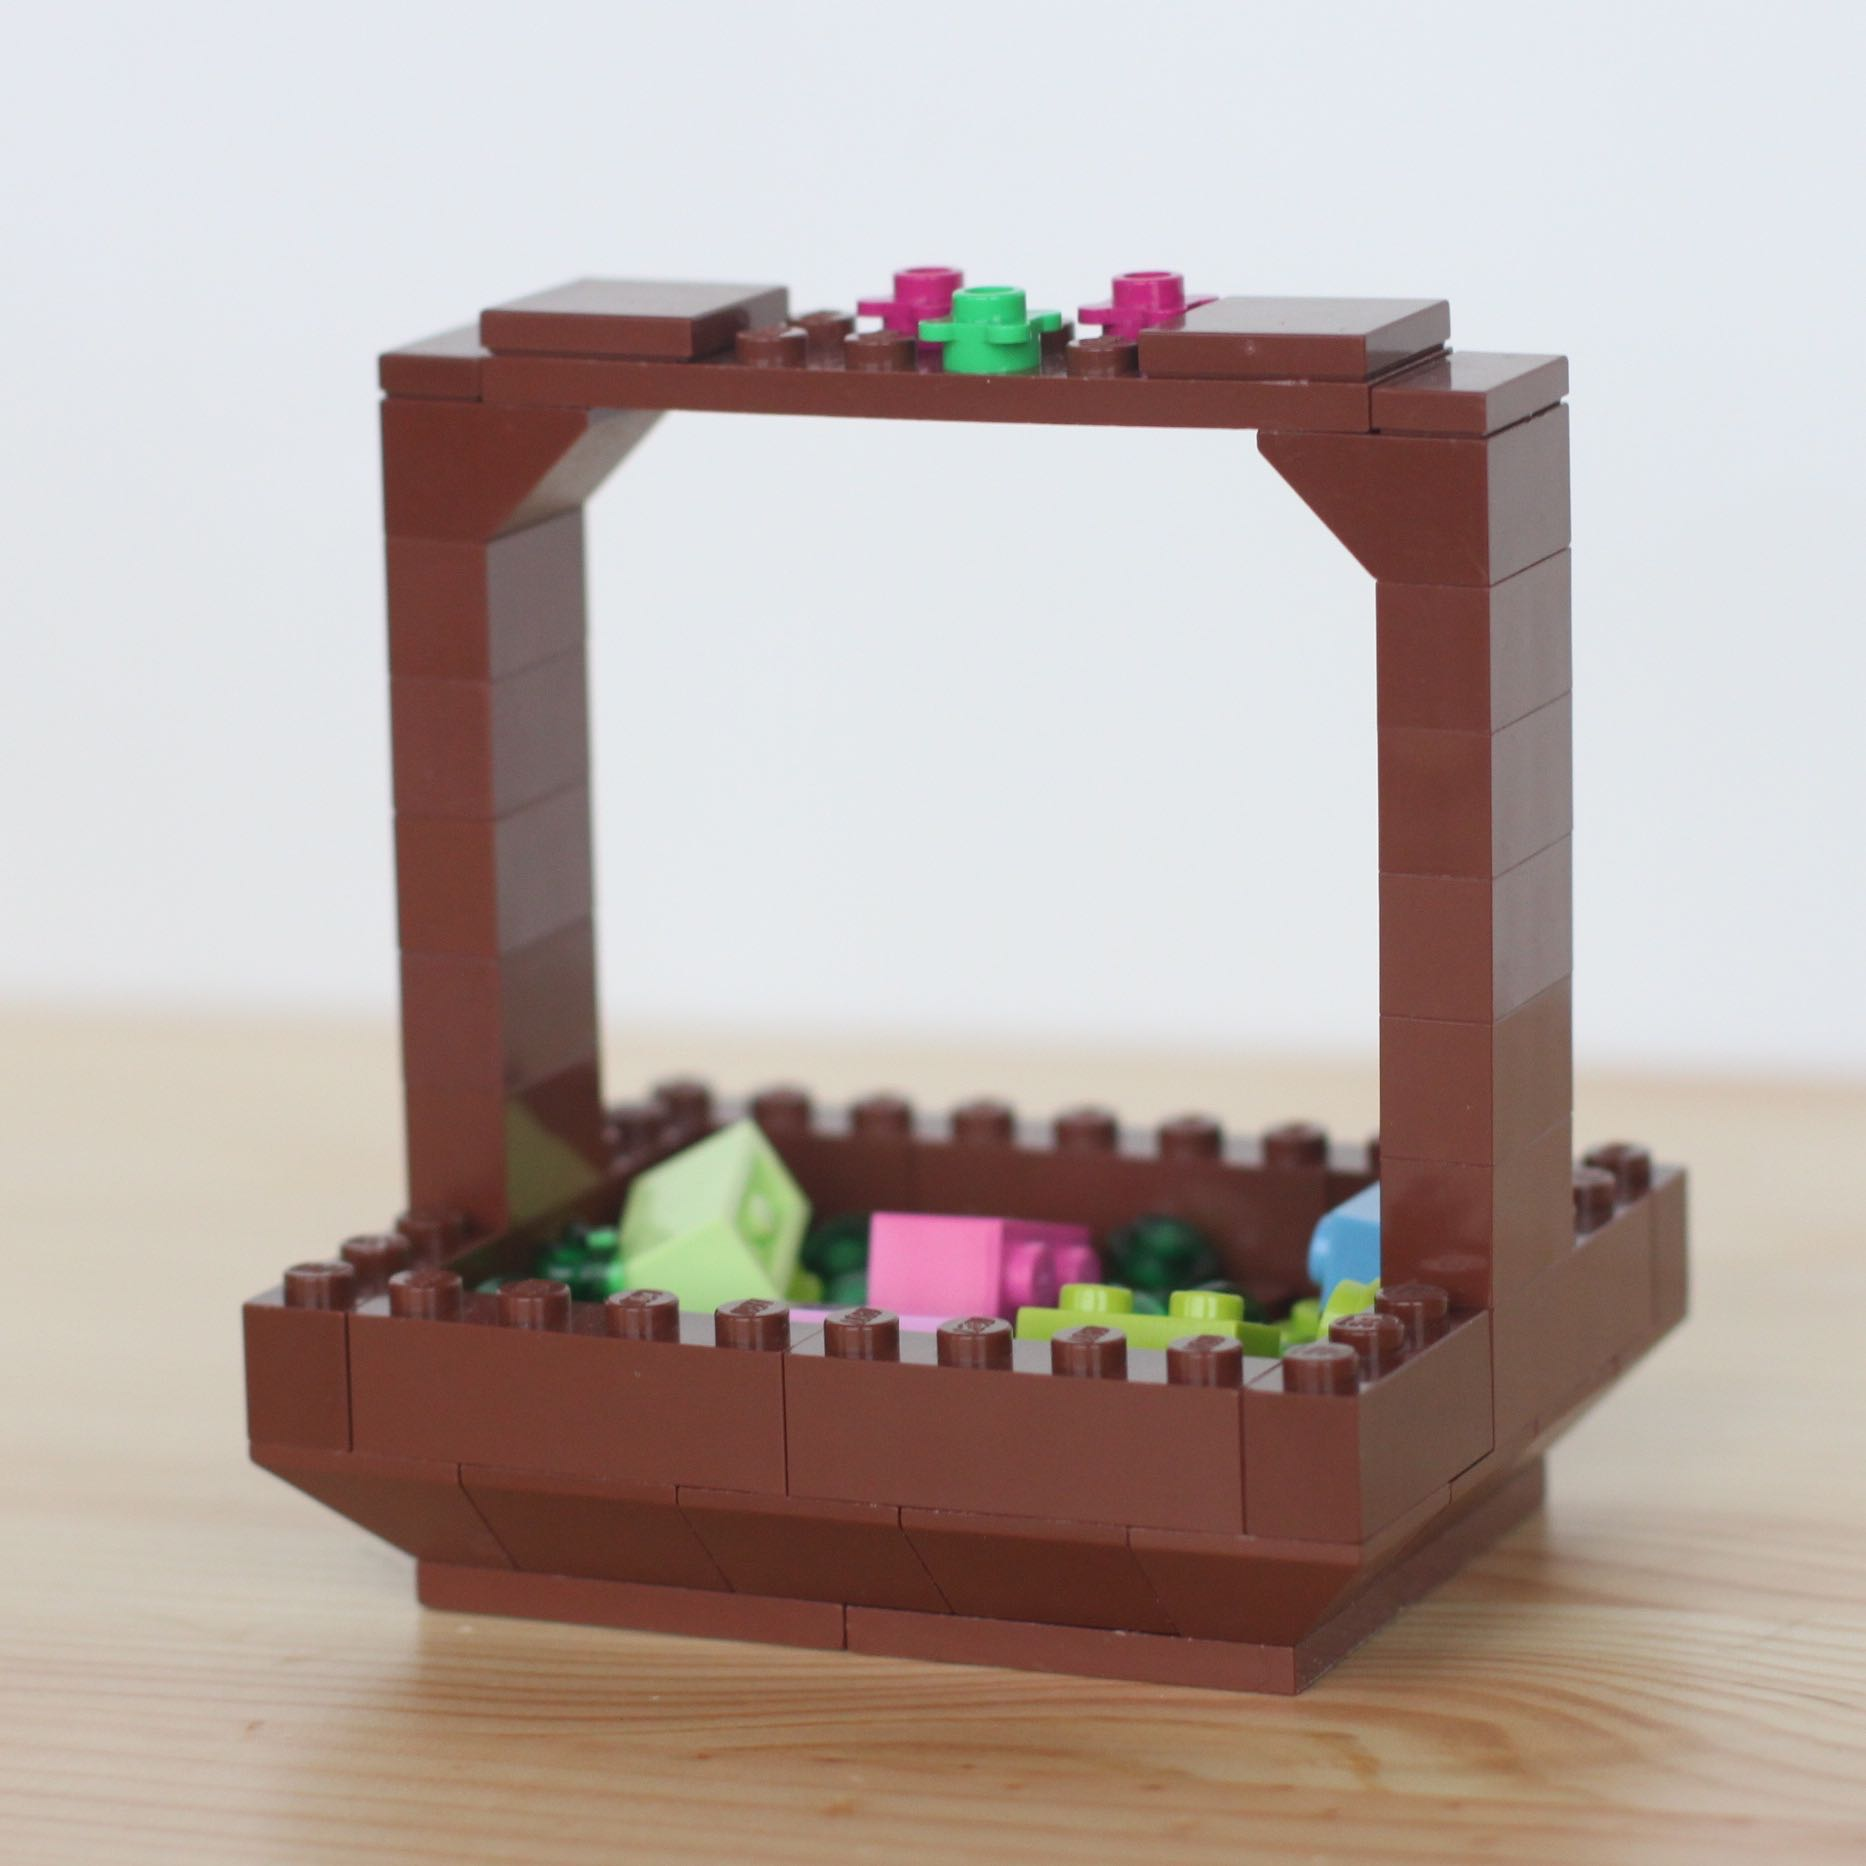 7 Spring Lego Projects to Build